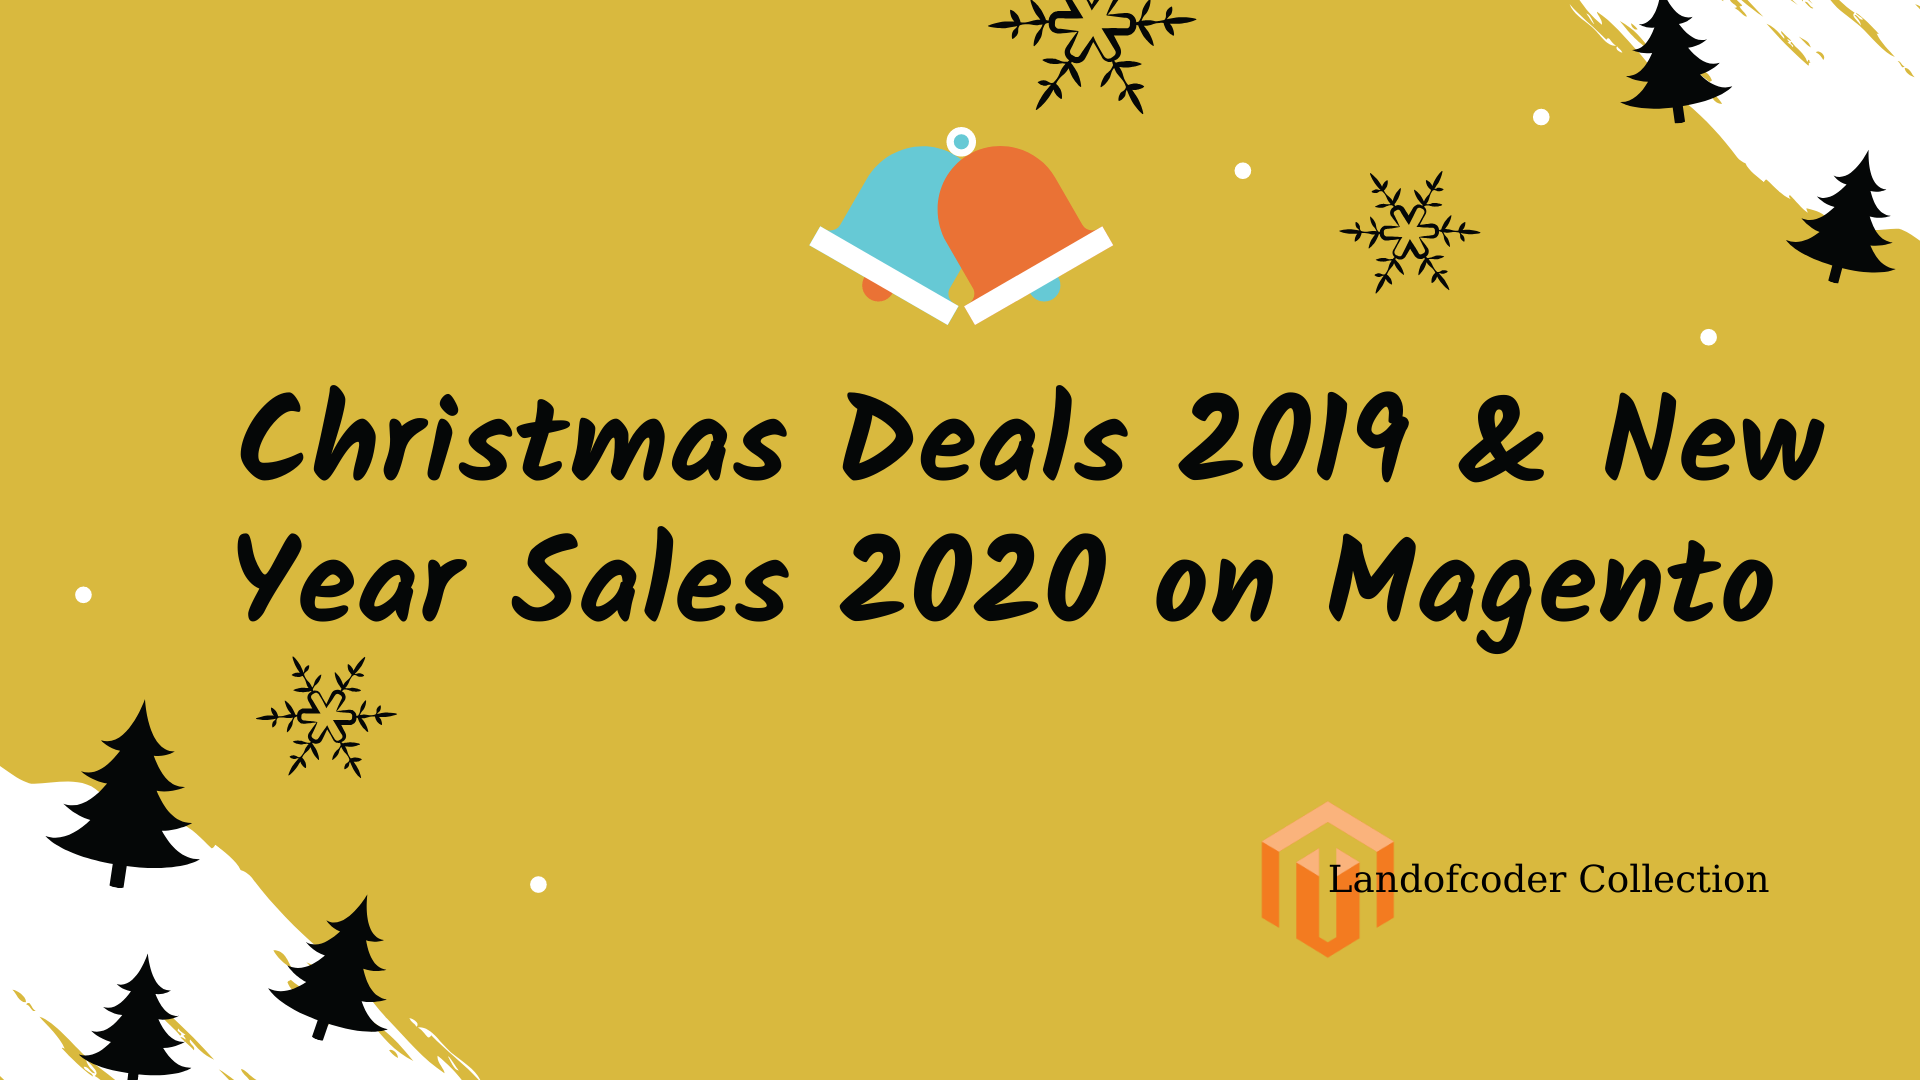 Before Christmas Sales 2020 Christmas Deals 2019 & New Year Sales 2020 Collection | Magento 2